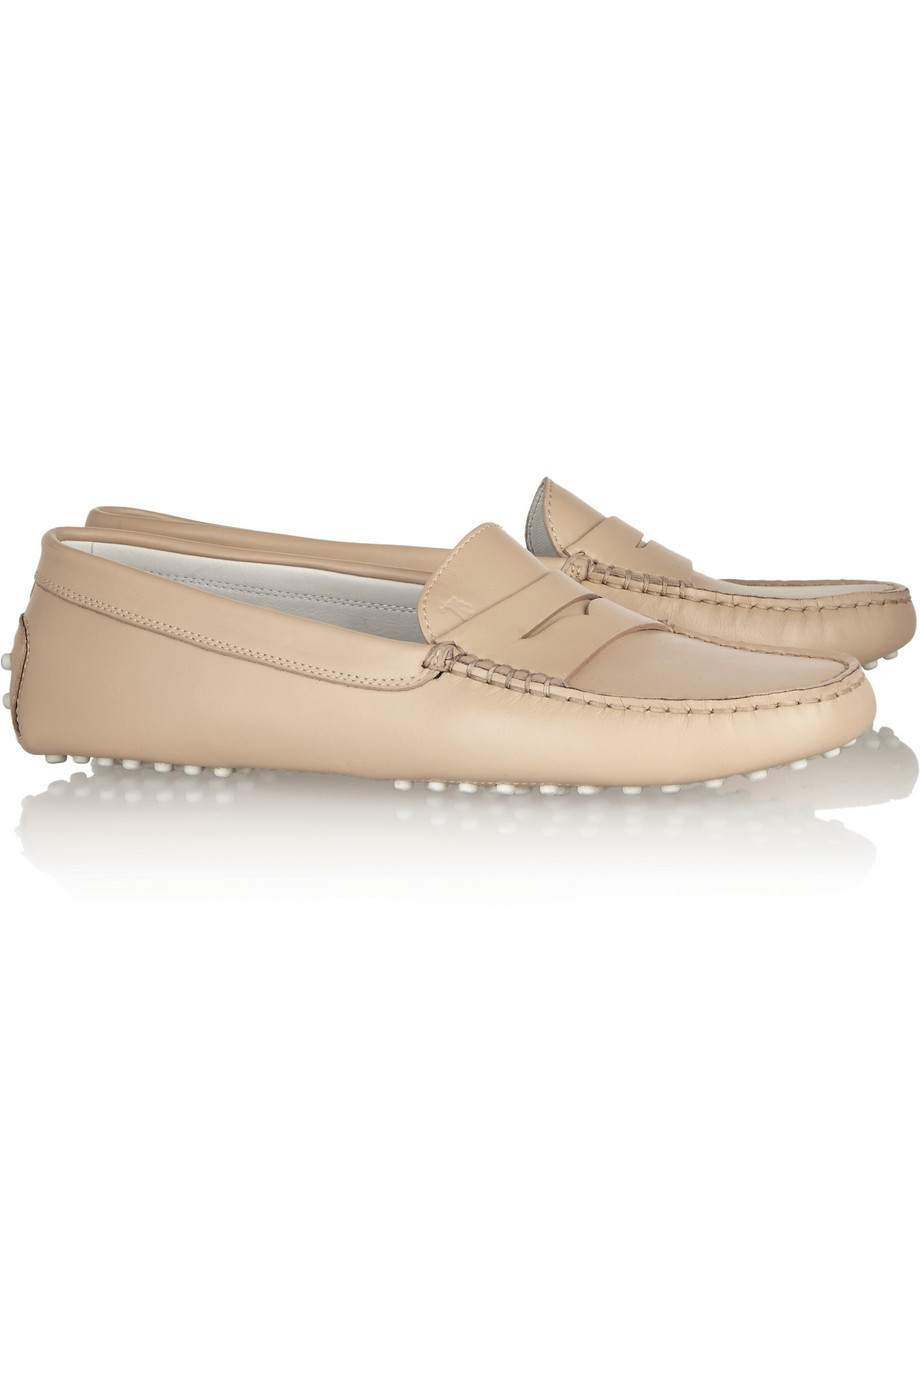 8f21e8d6010 Lyst - Tod s Gommino Leather Loafers in Natural